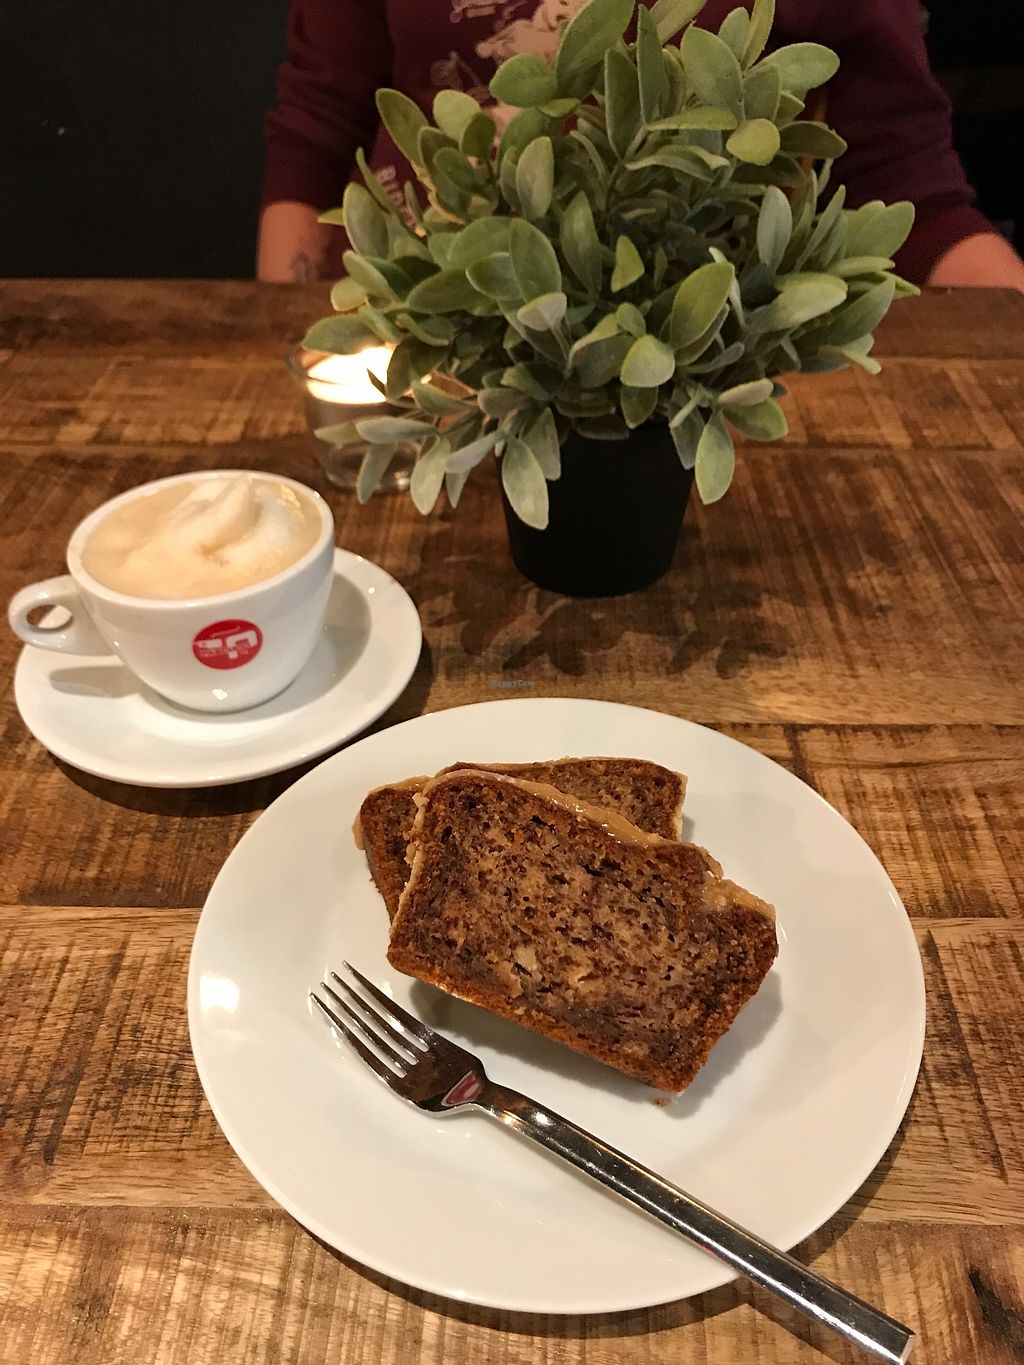 """Photo of Bidges & Sons  by <a href=""""/members/profile/Bidges%26Sons"""">Bidges&Sons</a> <br/>Banana Bread <br/> January 10, 2018  - <a href='/contact/abuse/image/100823/344965'>Report</a>"""